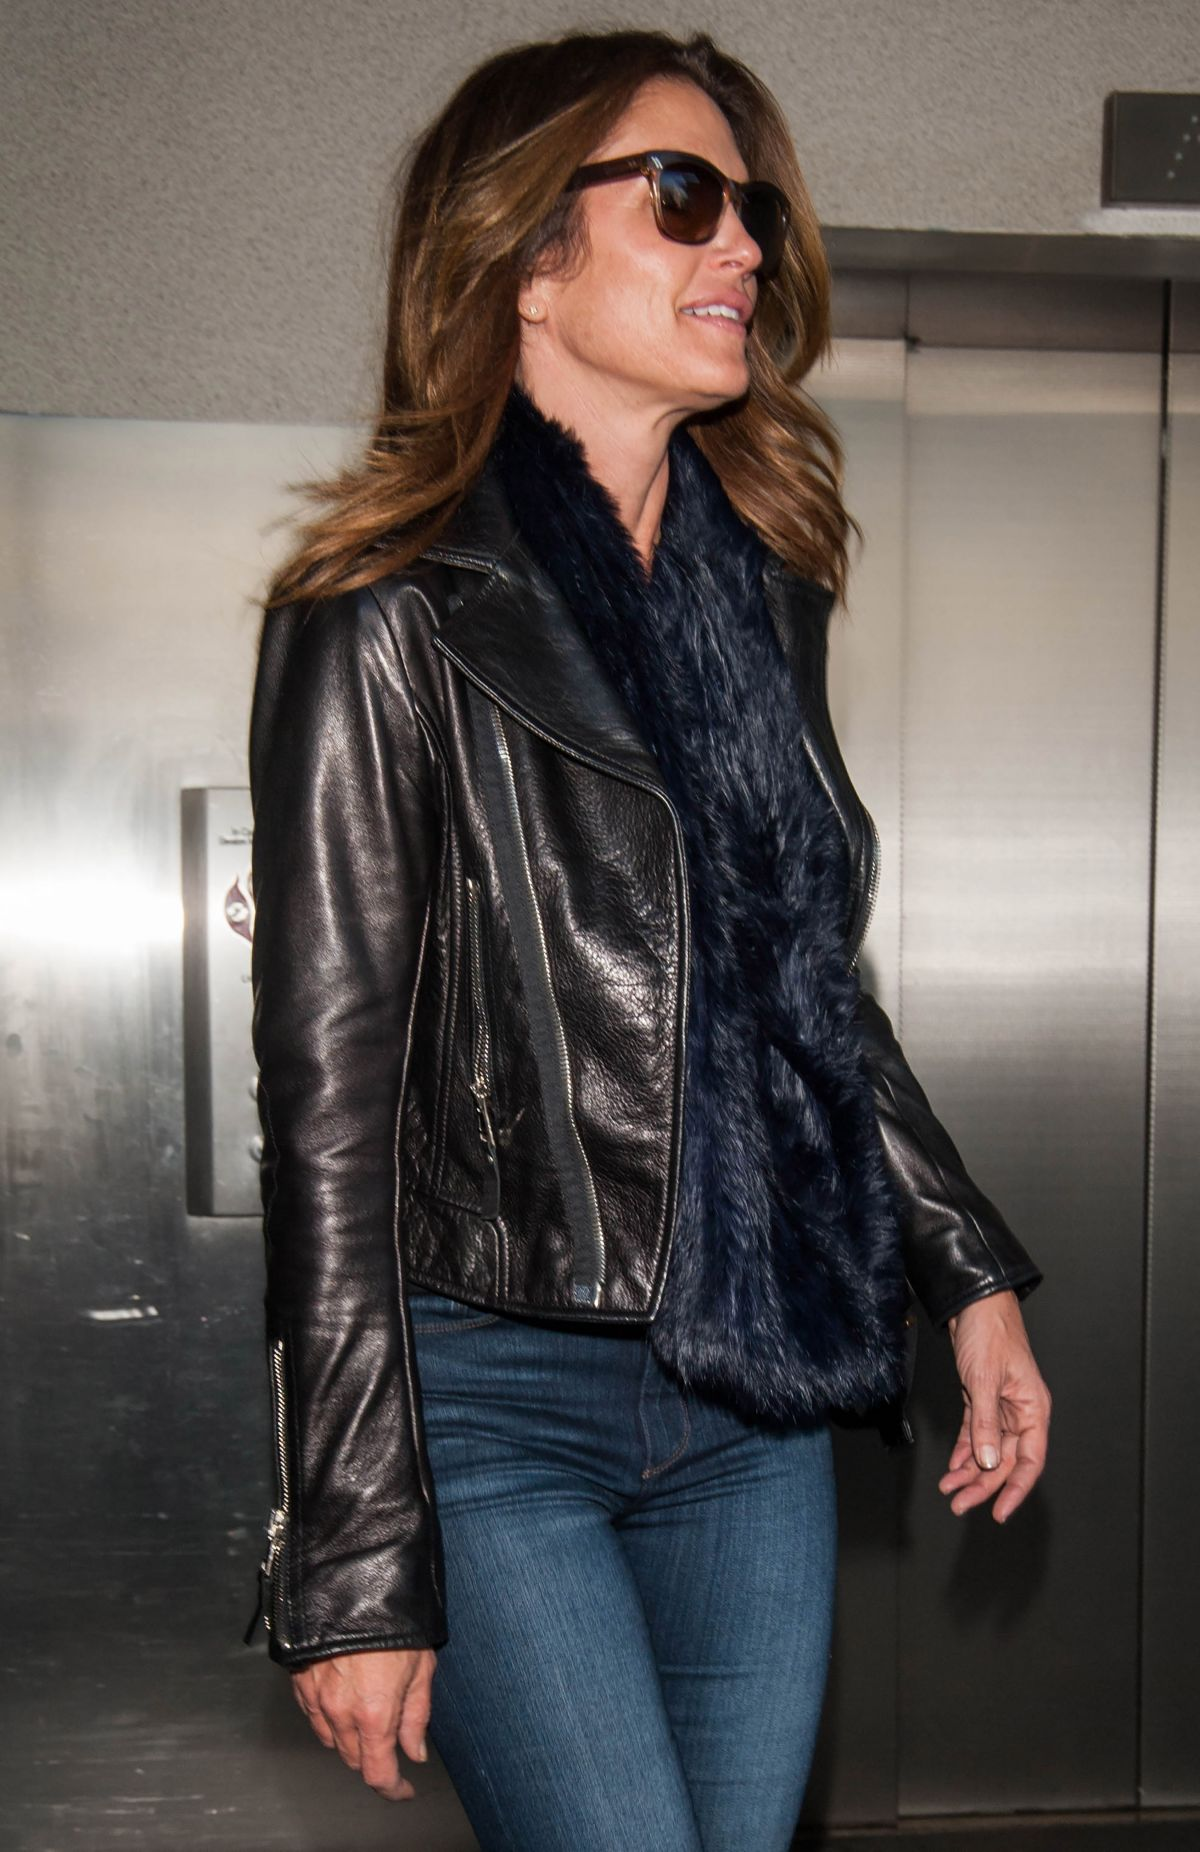 CINDY CRAWFORD at LAX Airport in Los Angeles 03/12/2017